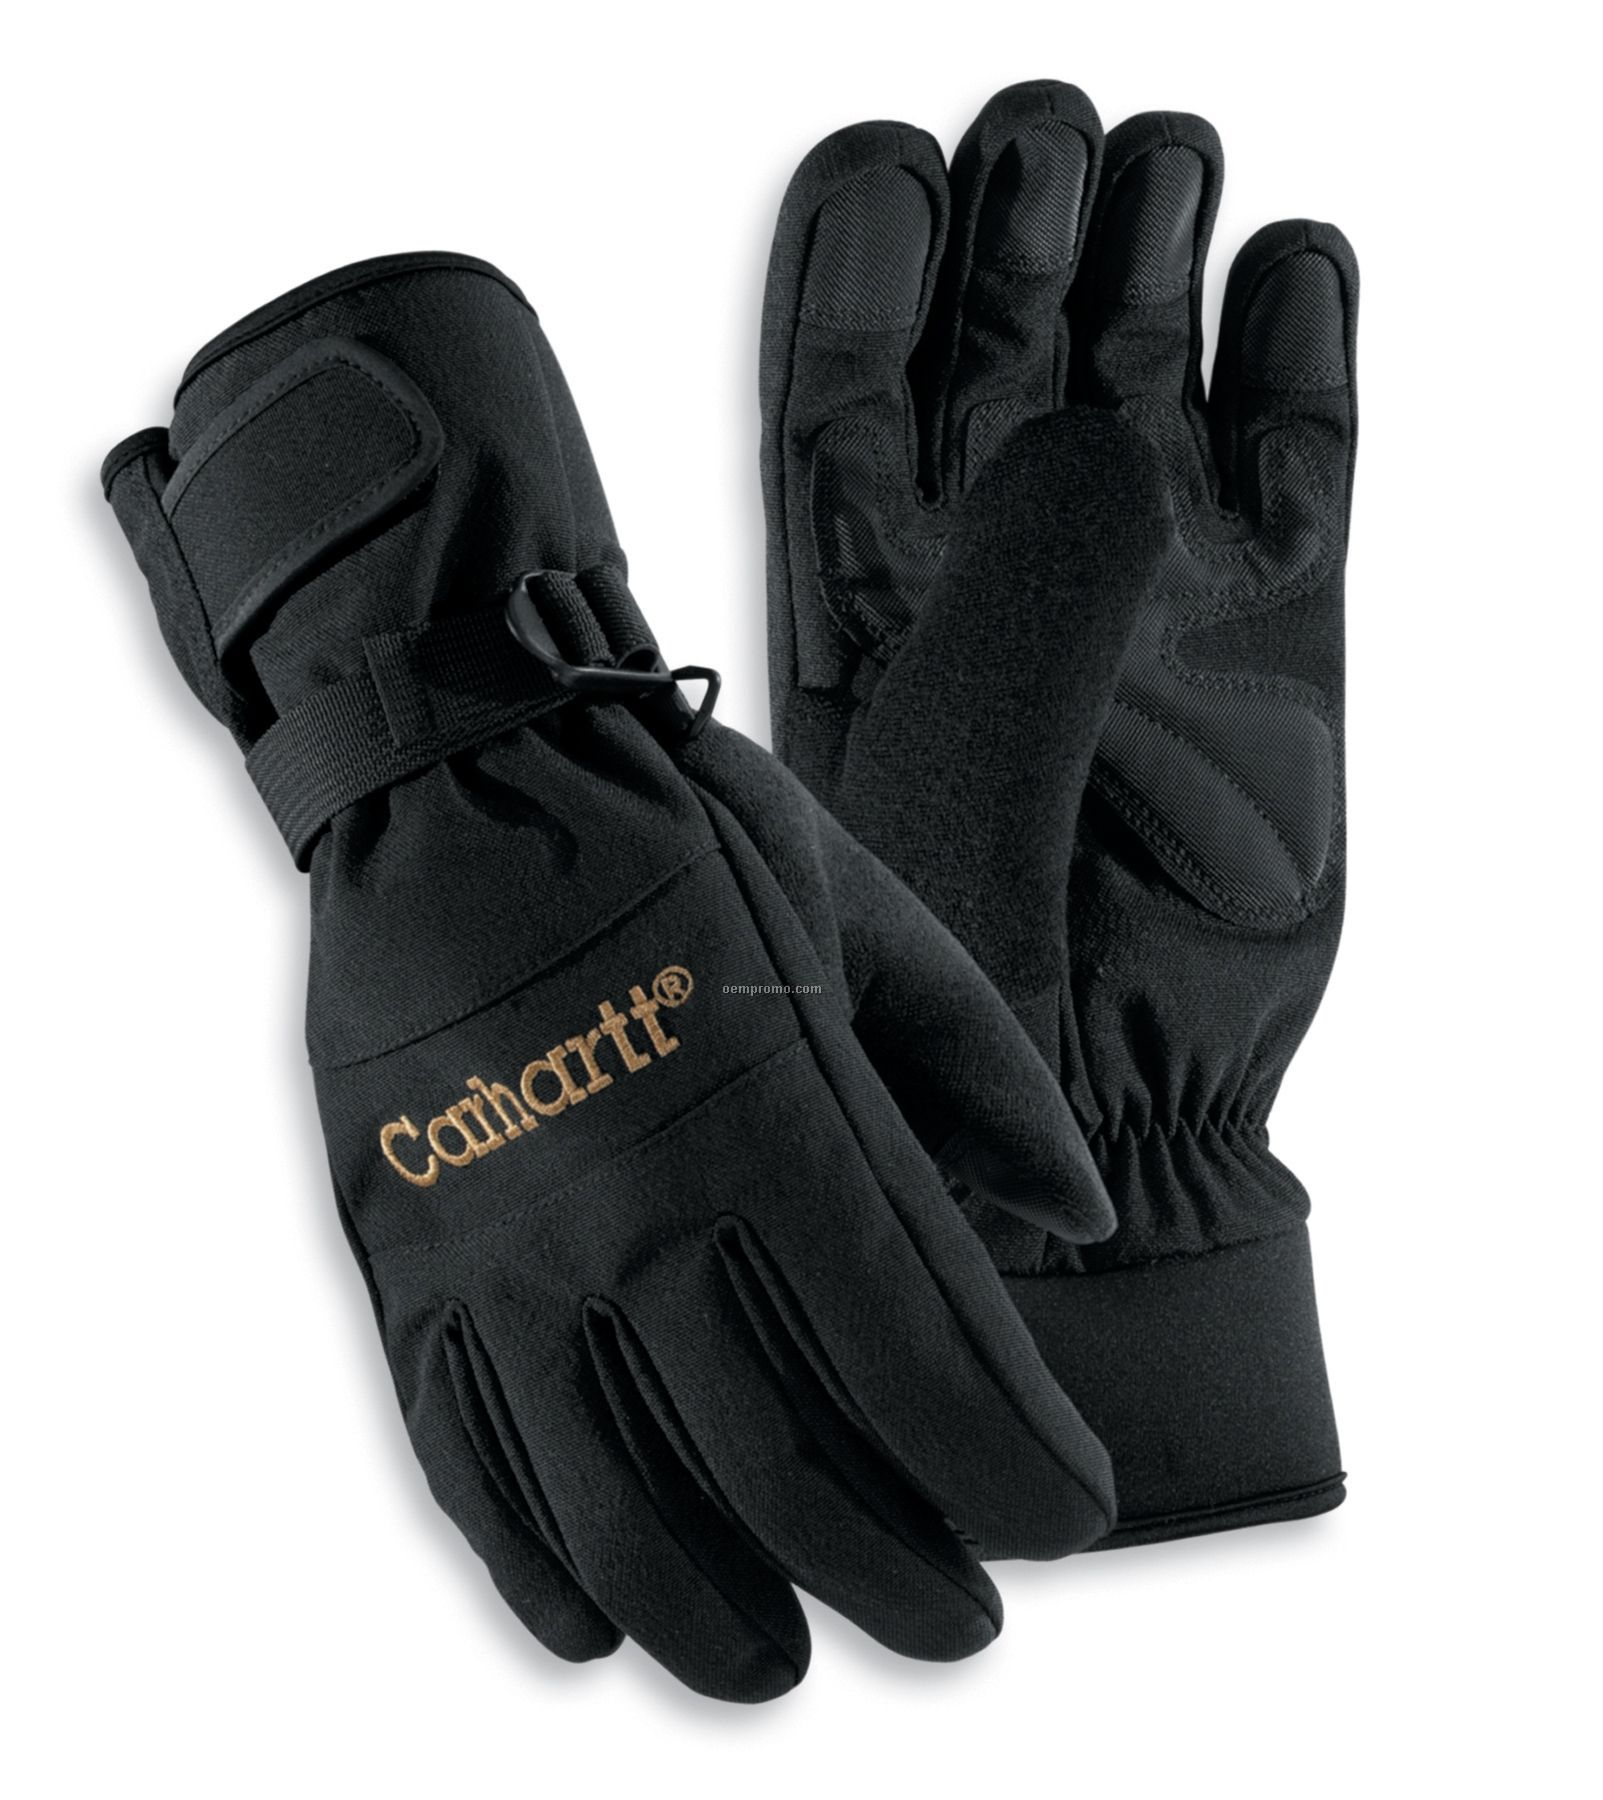 Carhartt Men's Insulated Nylon Waterproof Breathable Gloves